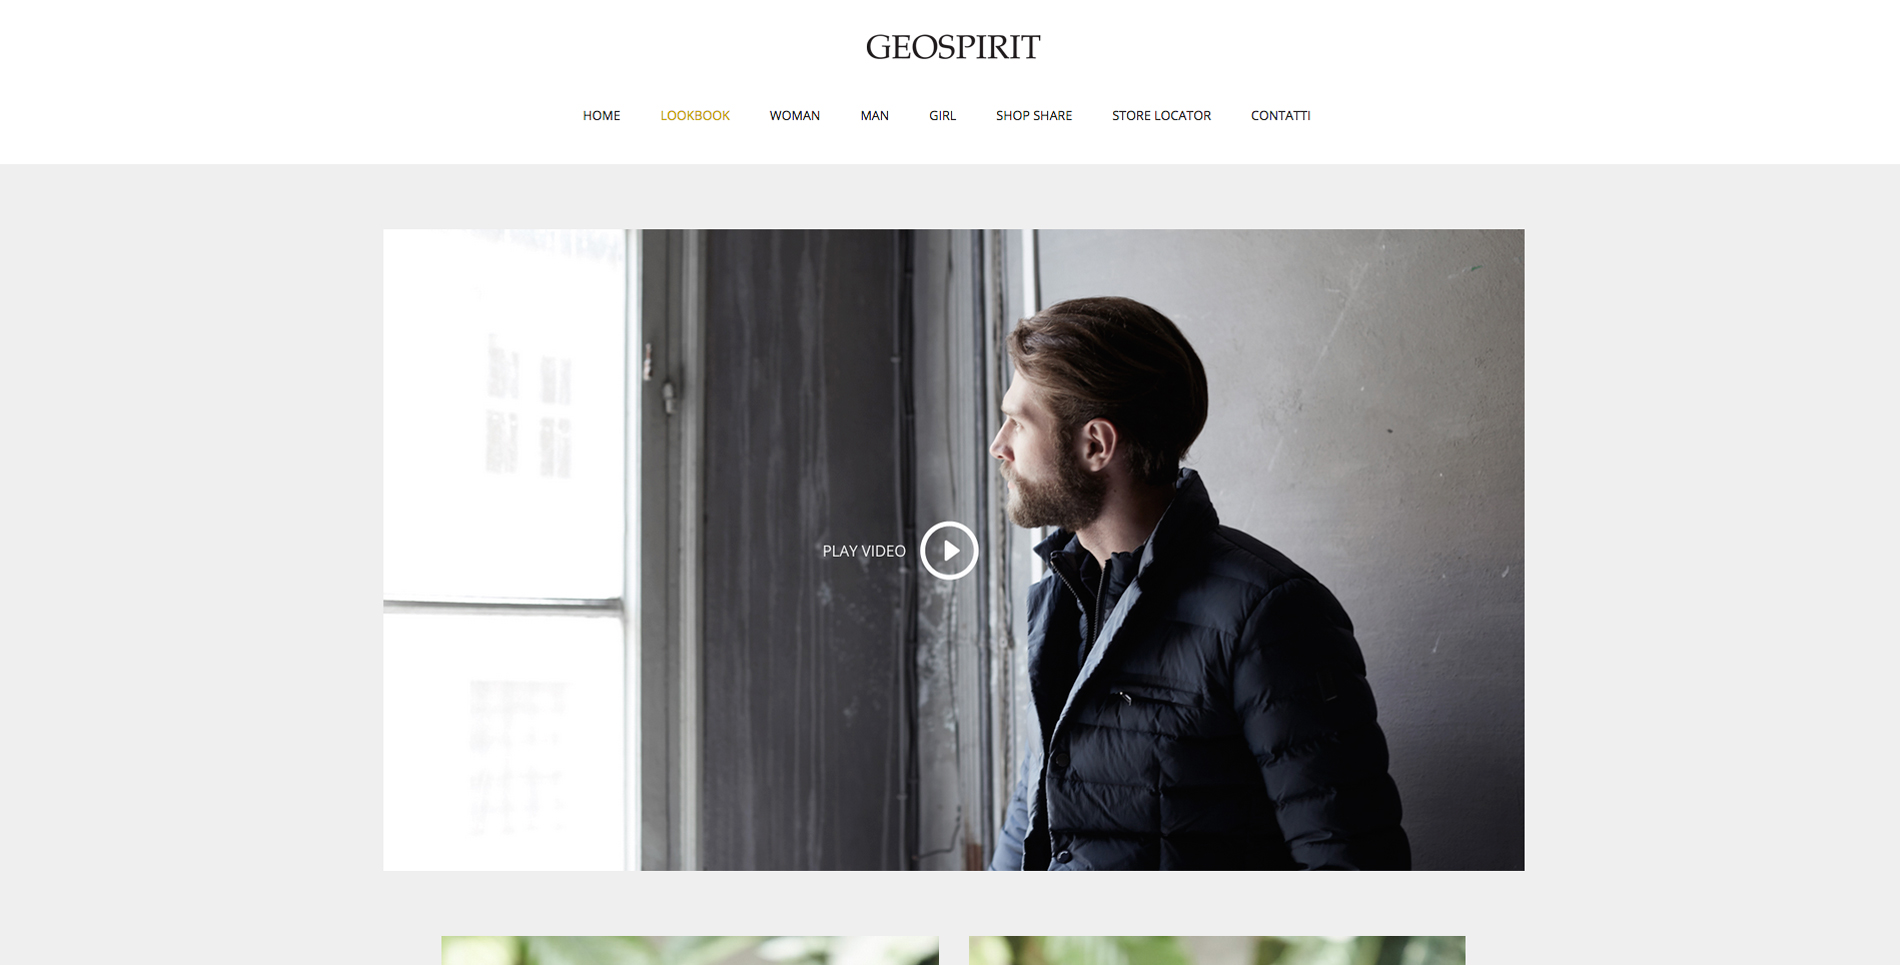 geospirit sito web lookbook